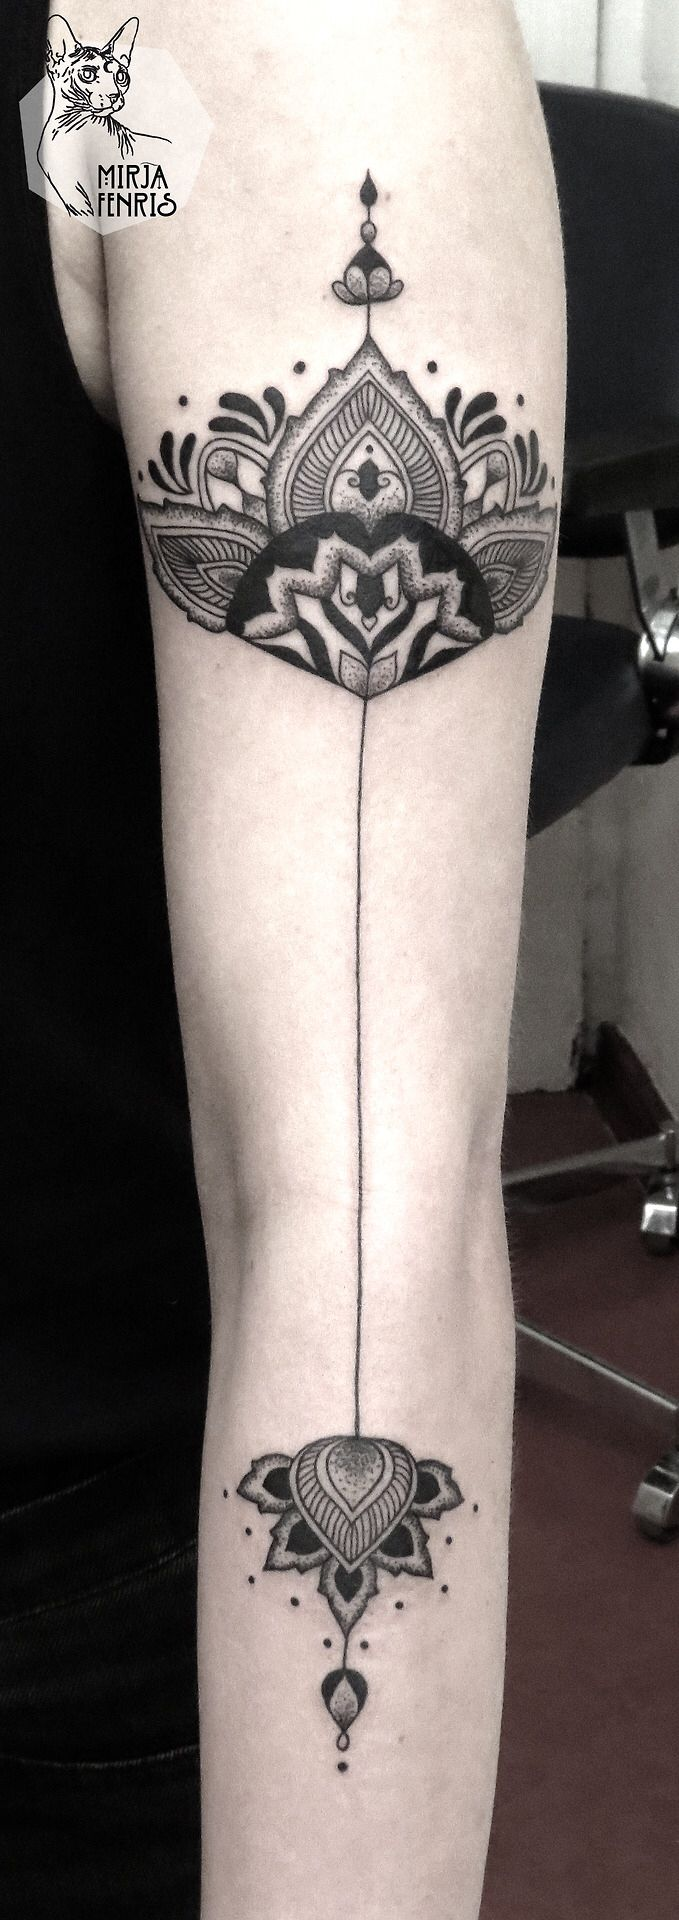 64 Best Ink Images On Pinterest Drawings Henna Tattoos And Mandalas Inkstarhalotattoomachinediagrams Mirja Fenris Sacred Geometry This Down The Back Of My Legs